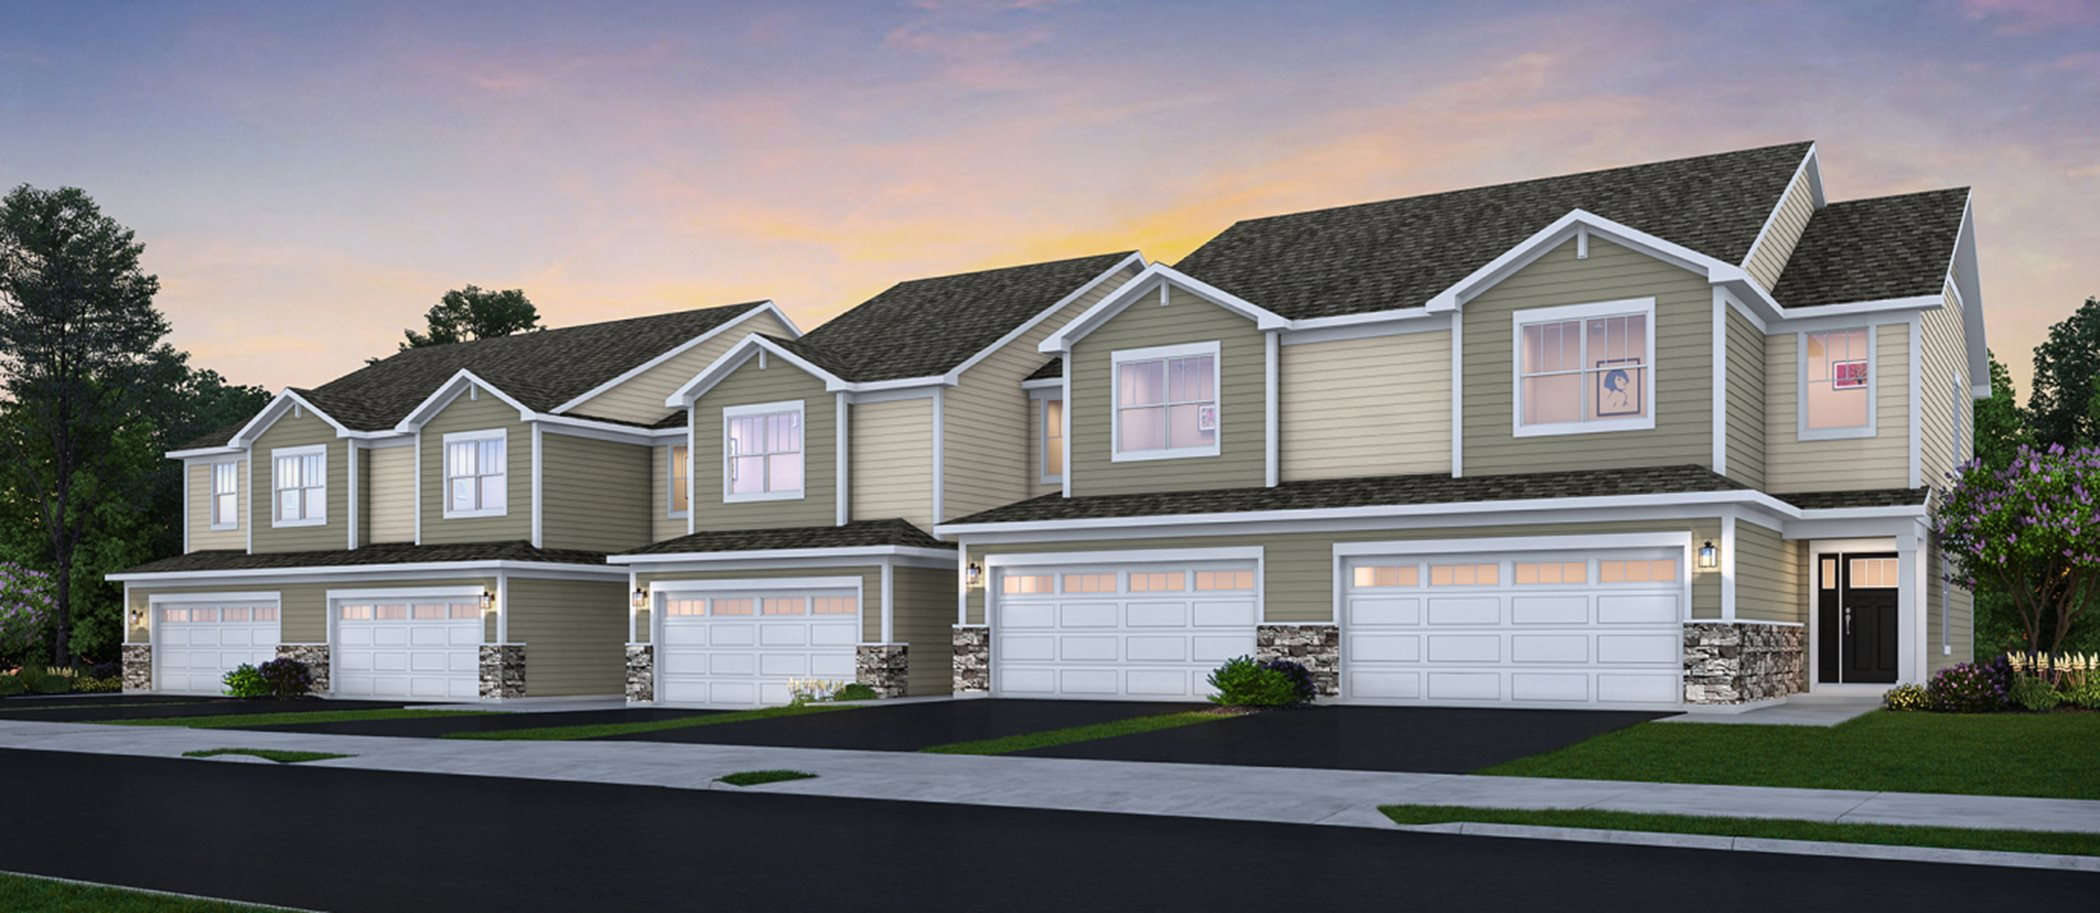 Crossing of Mundelein Traditional Townhomes Building Exterior